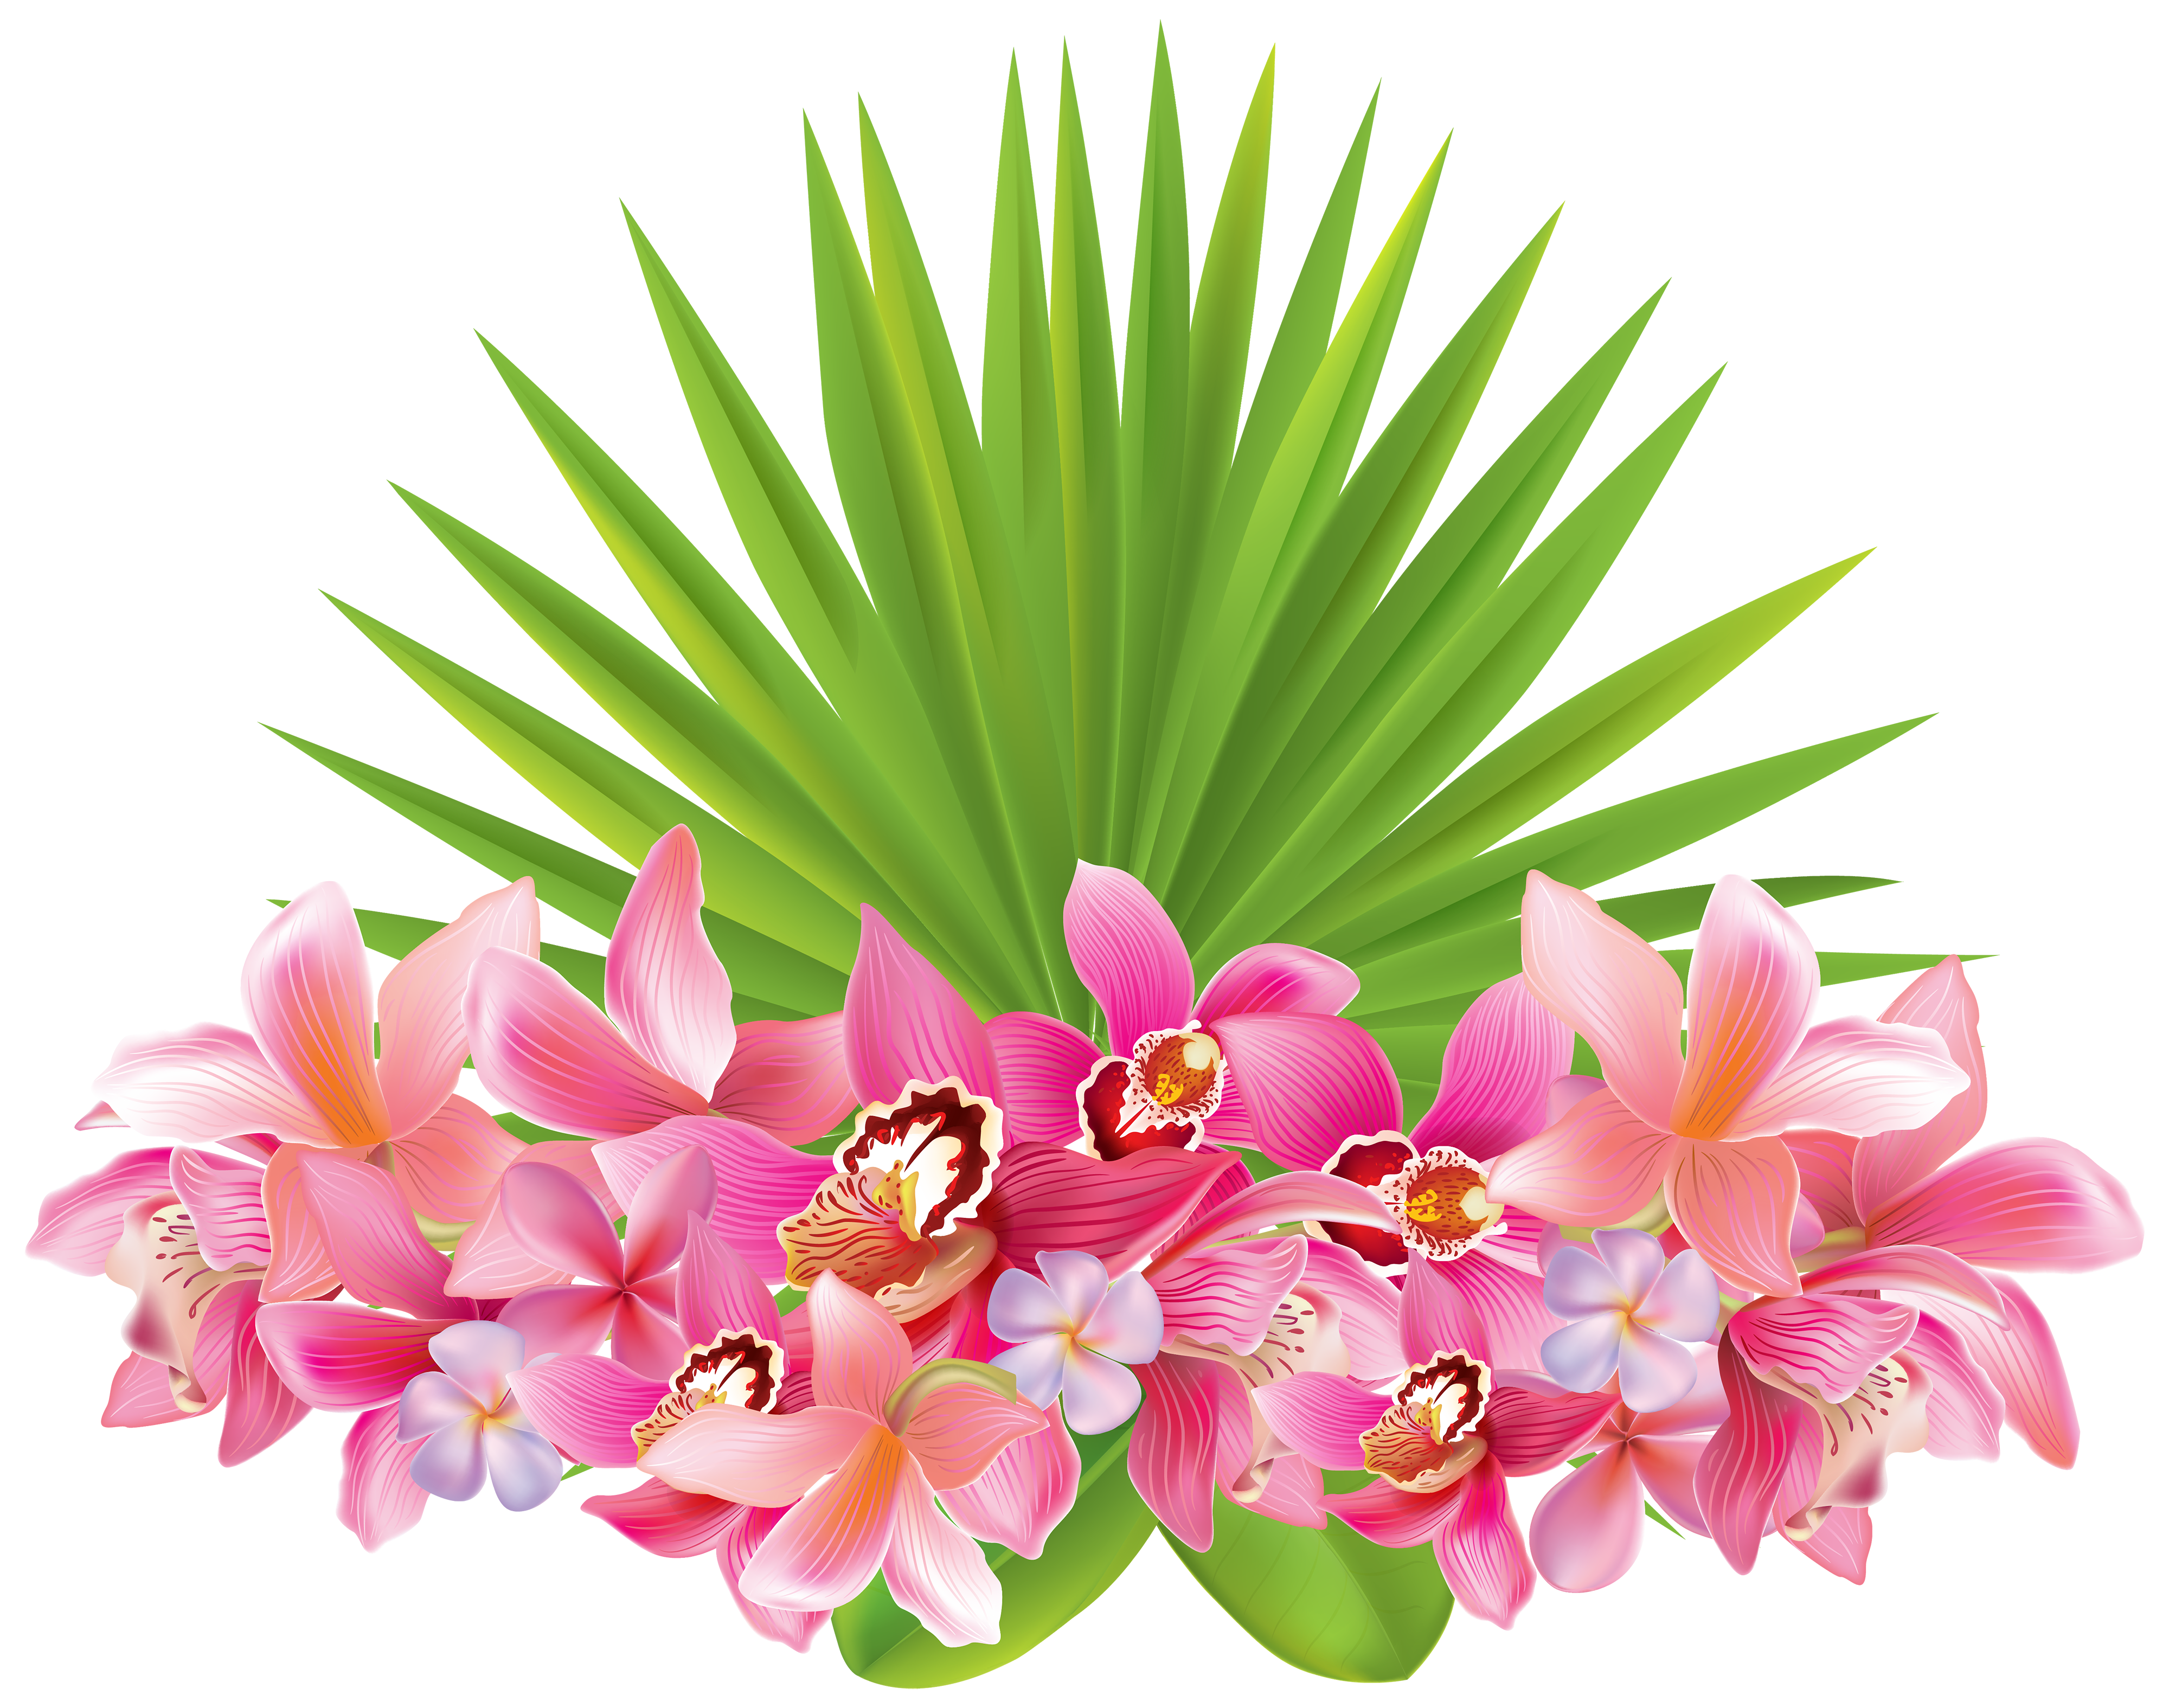 Tropical border png. Flowers clipart image gallery